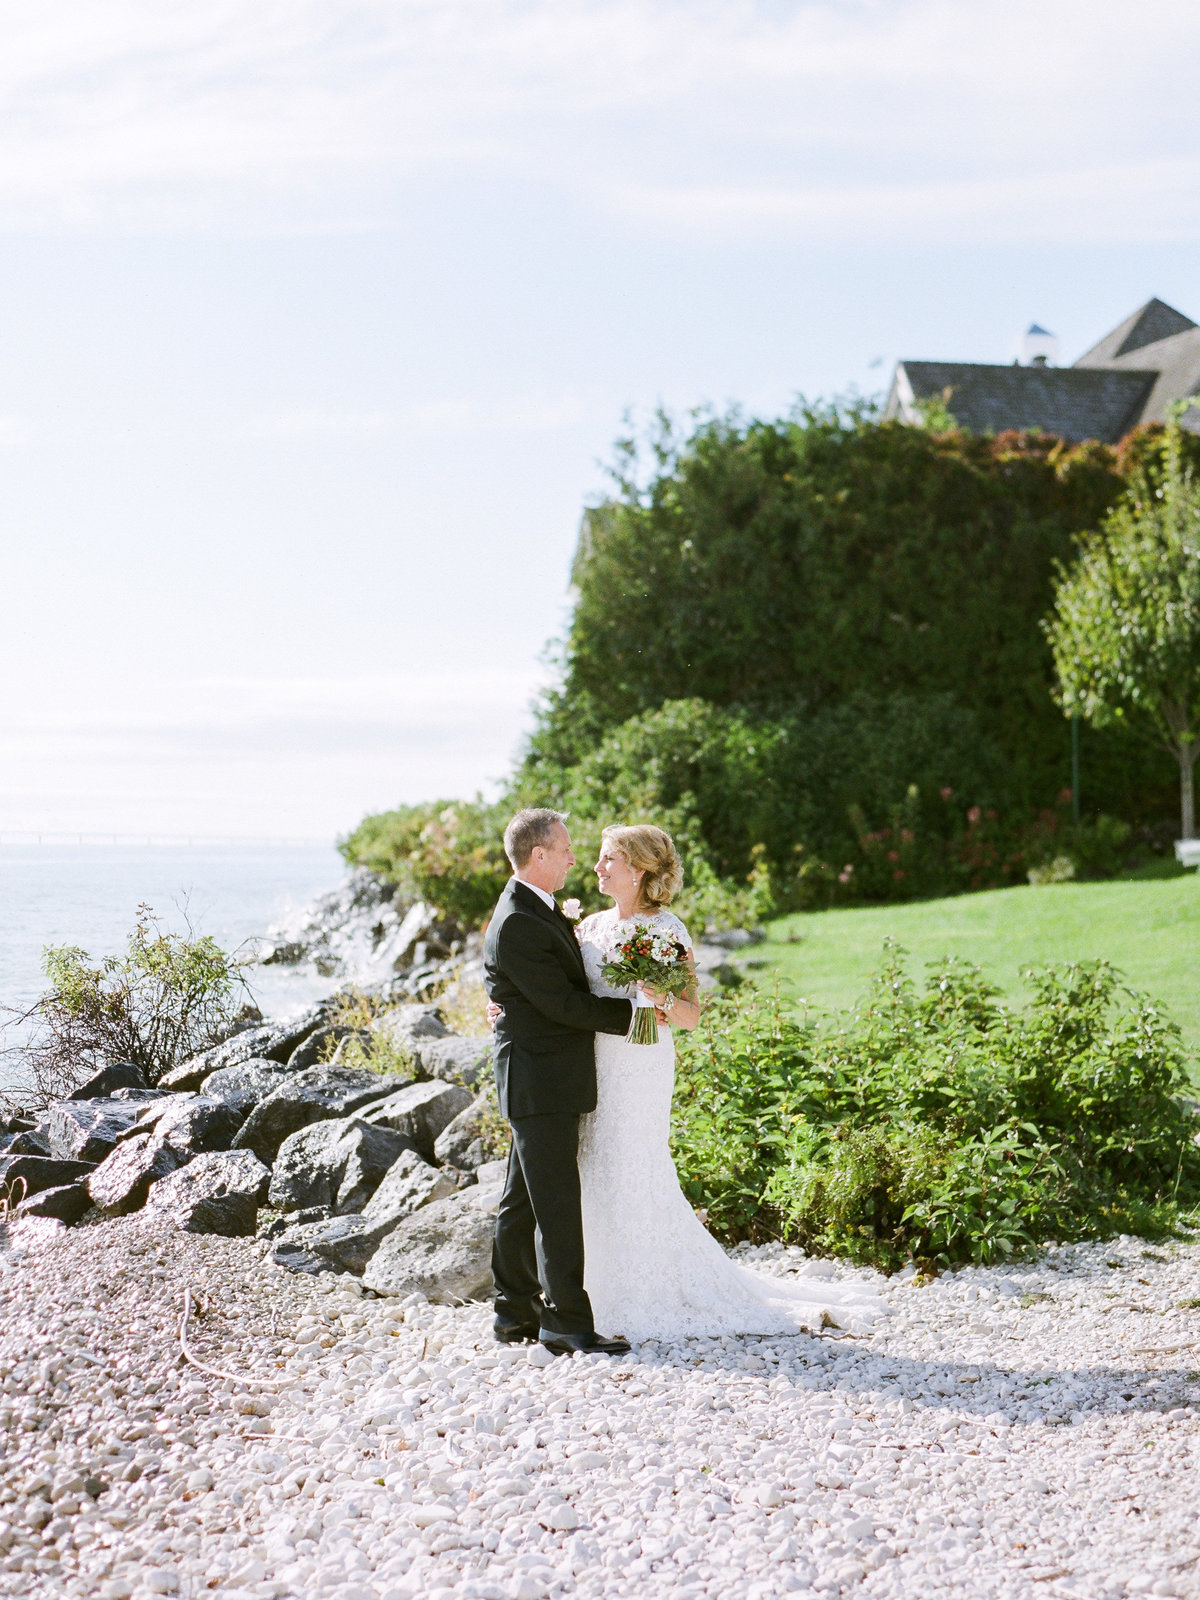 Mackinac Island Wedding - Debbie-1021